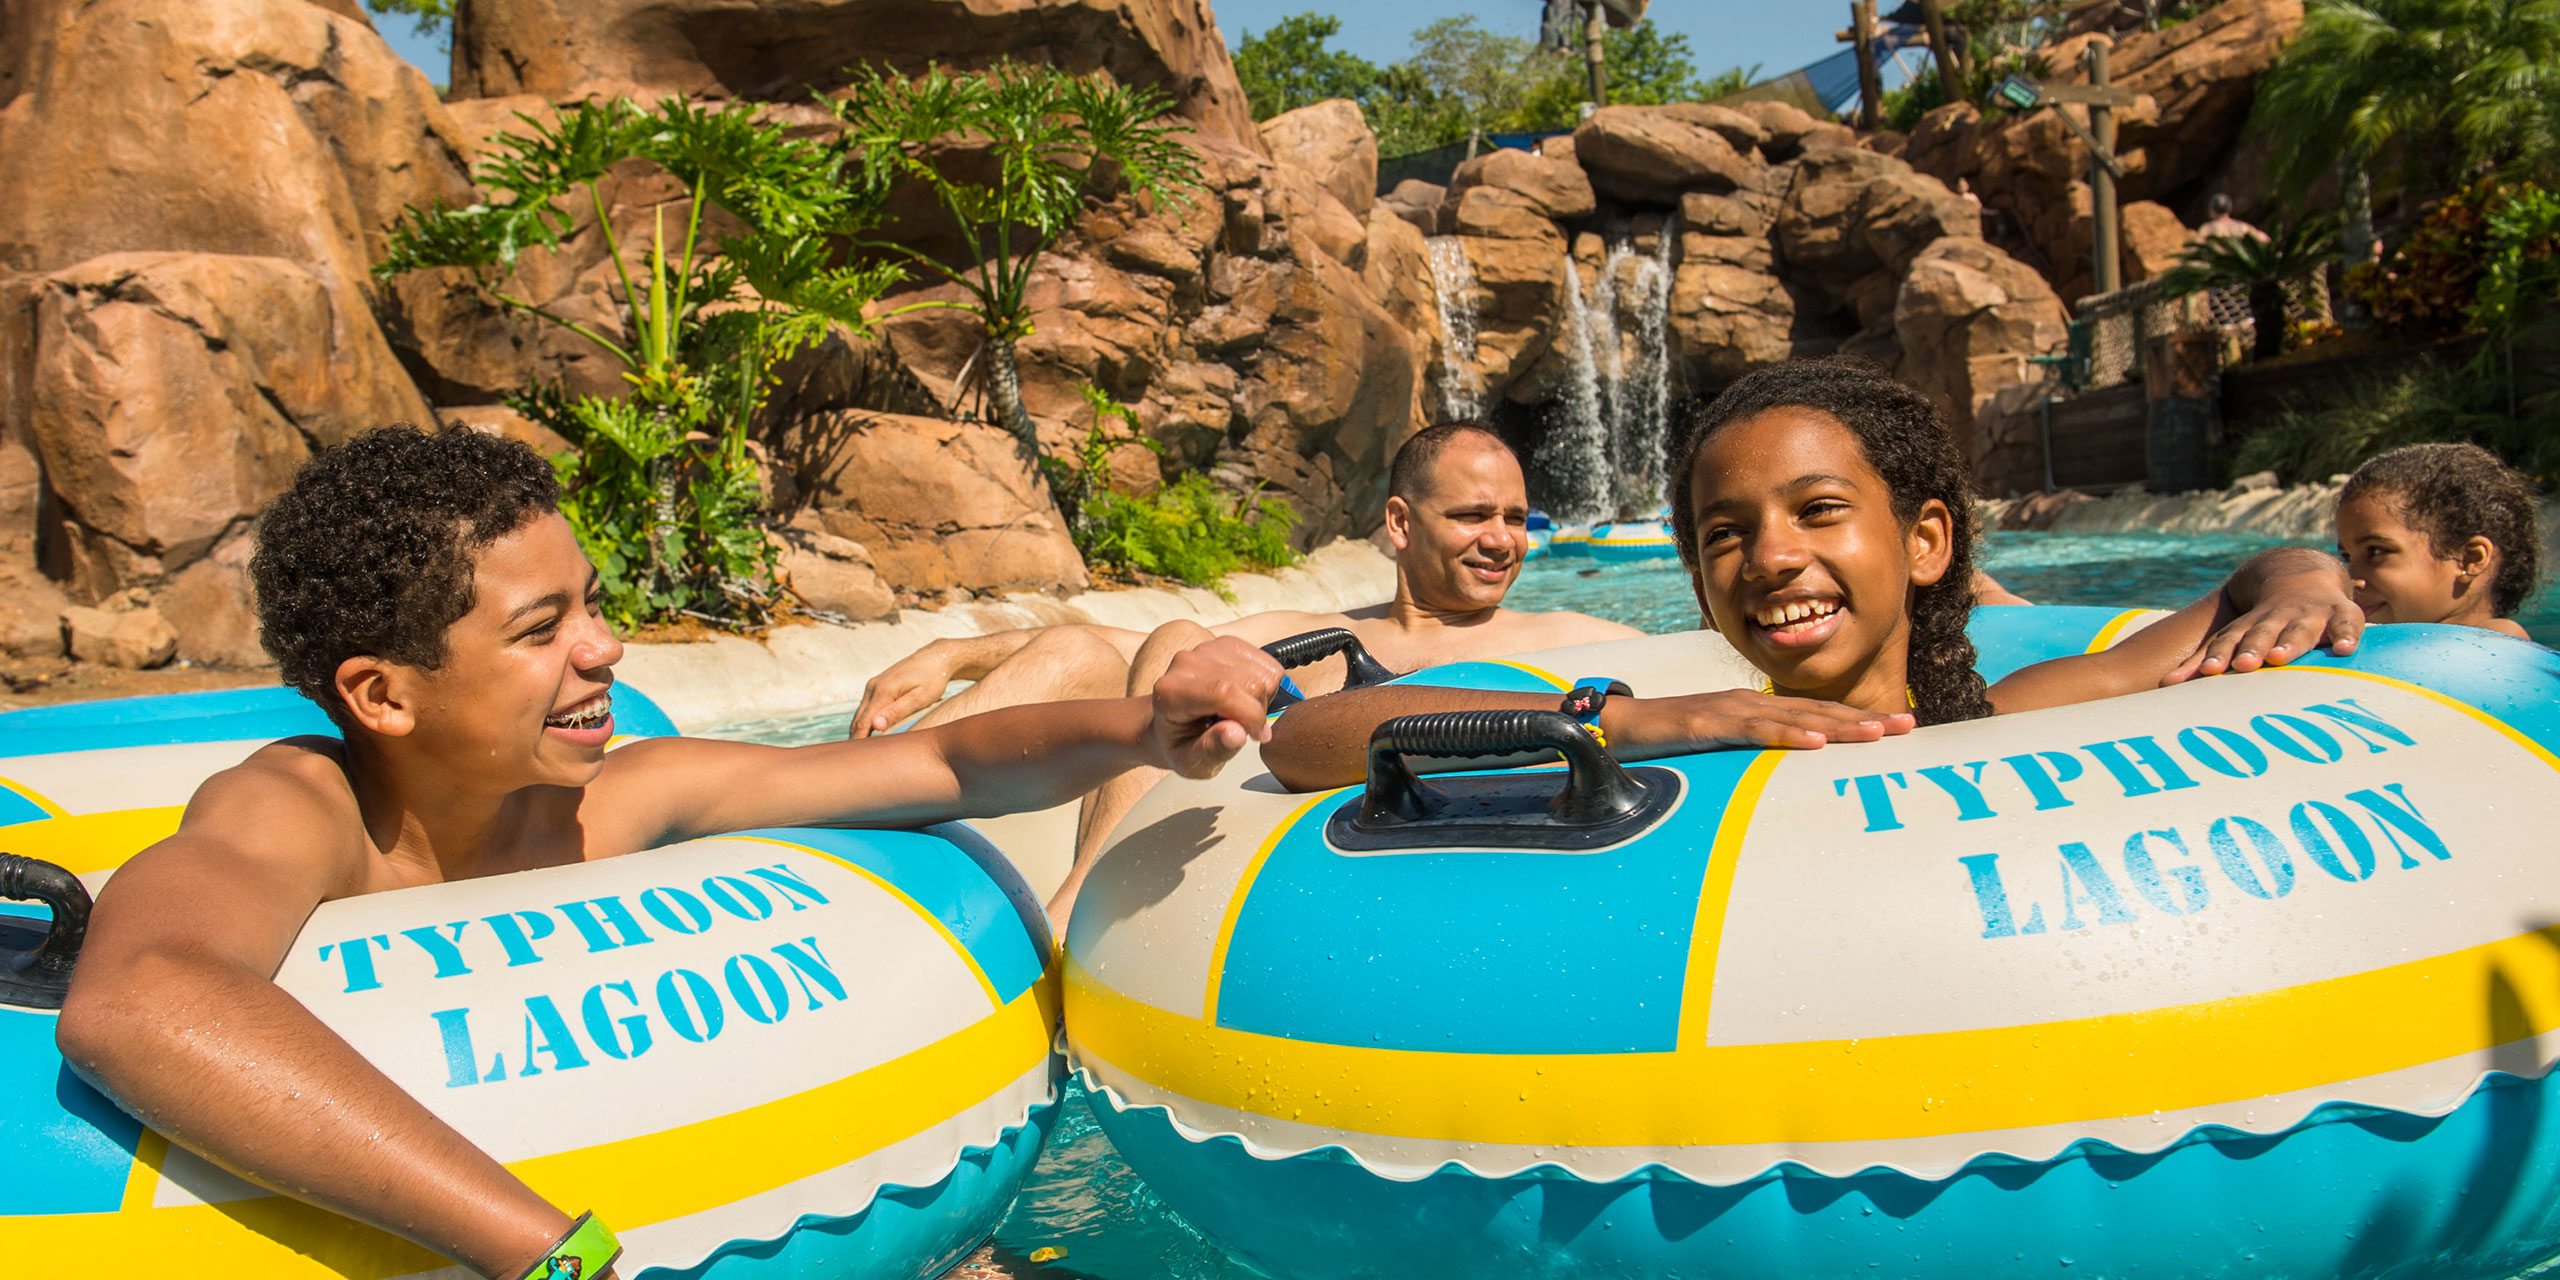 Typhoon Lagoon; Courtesy of Disney